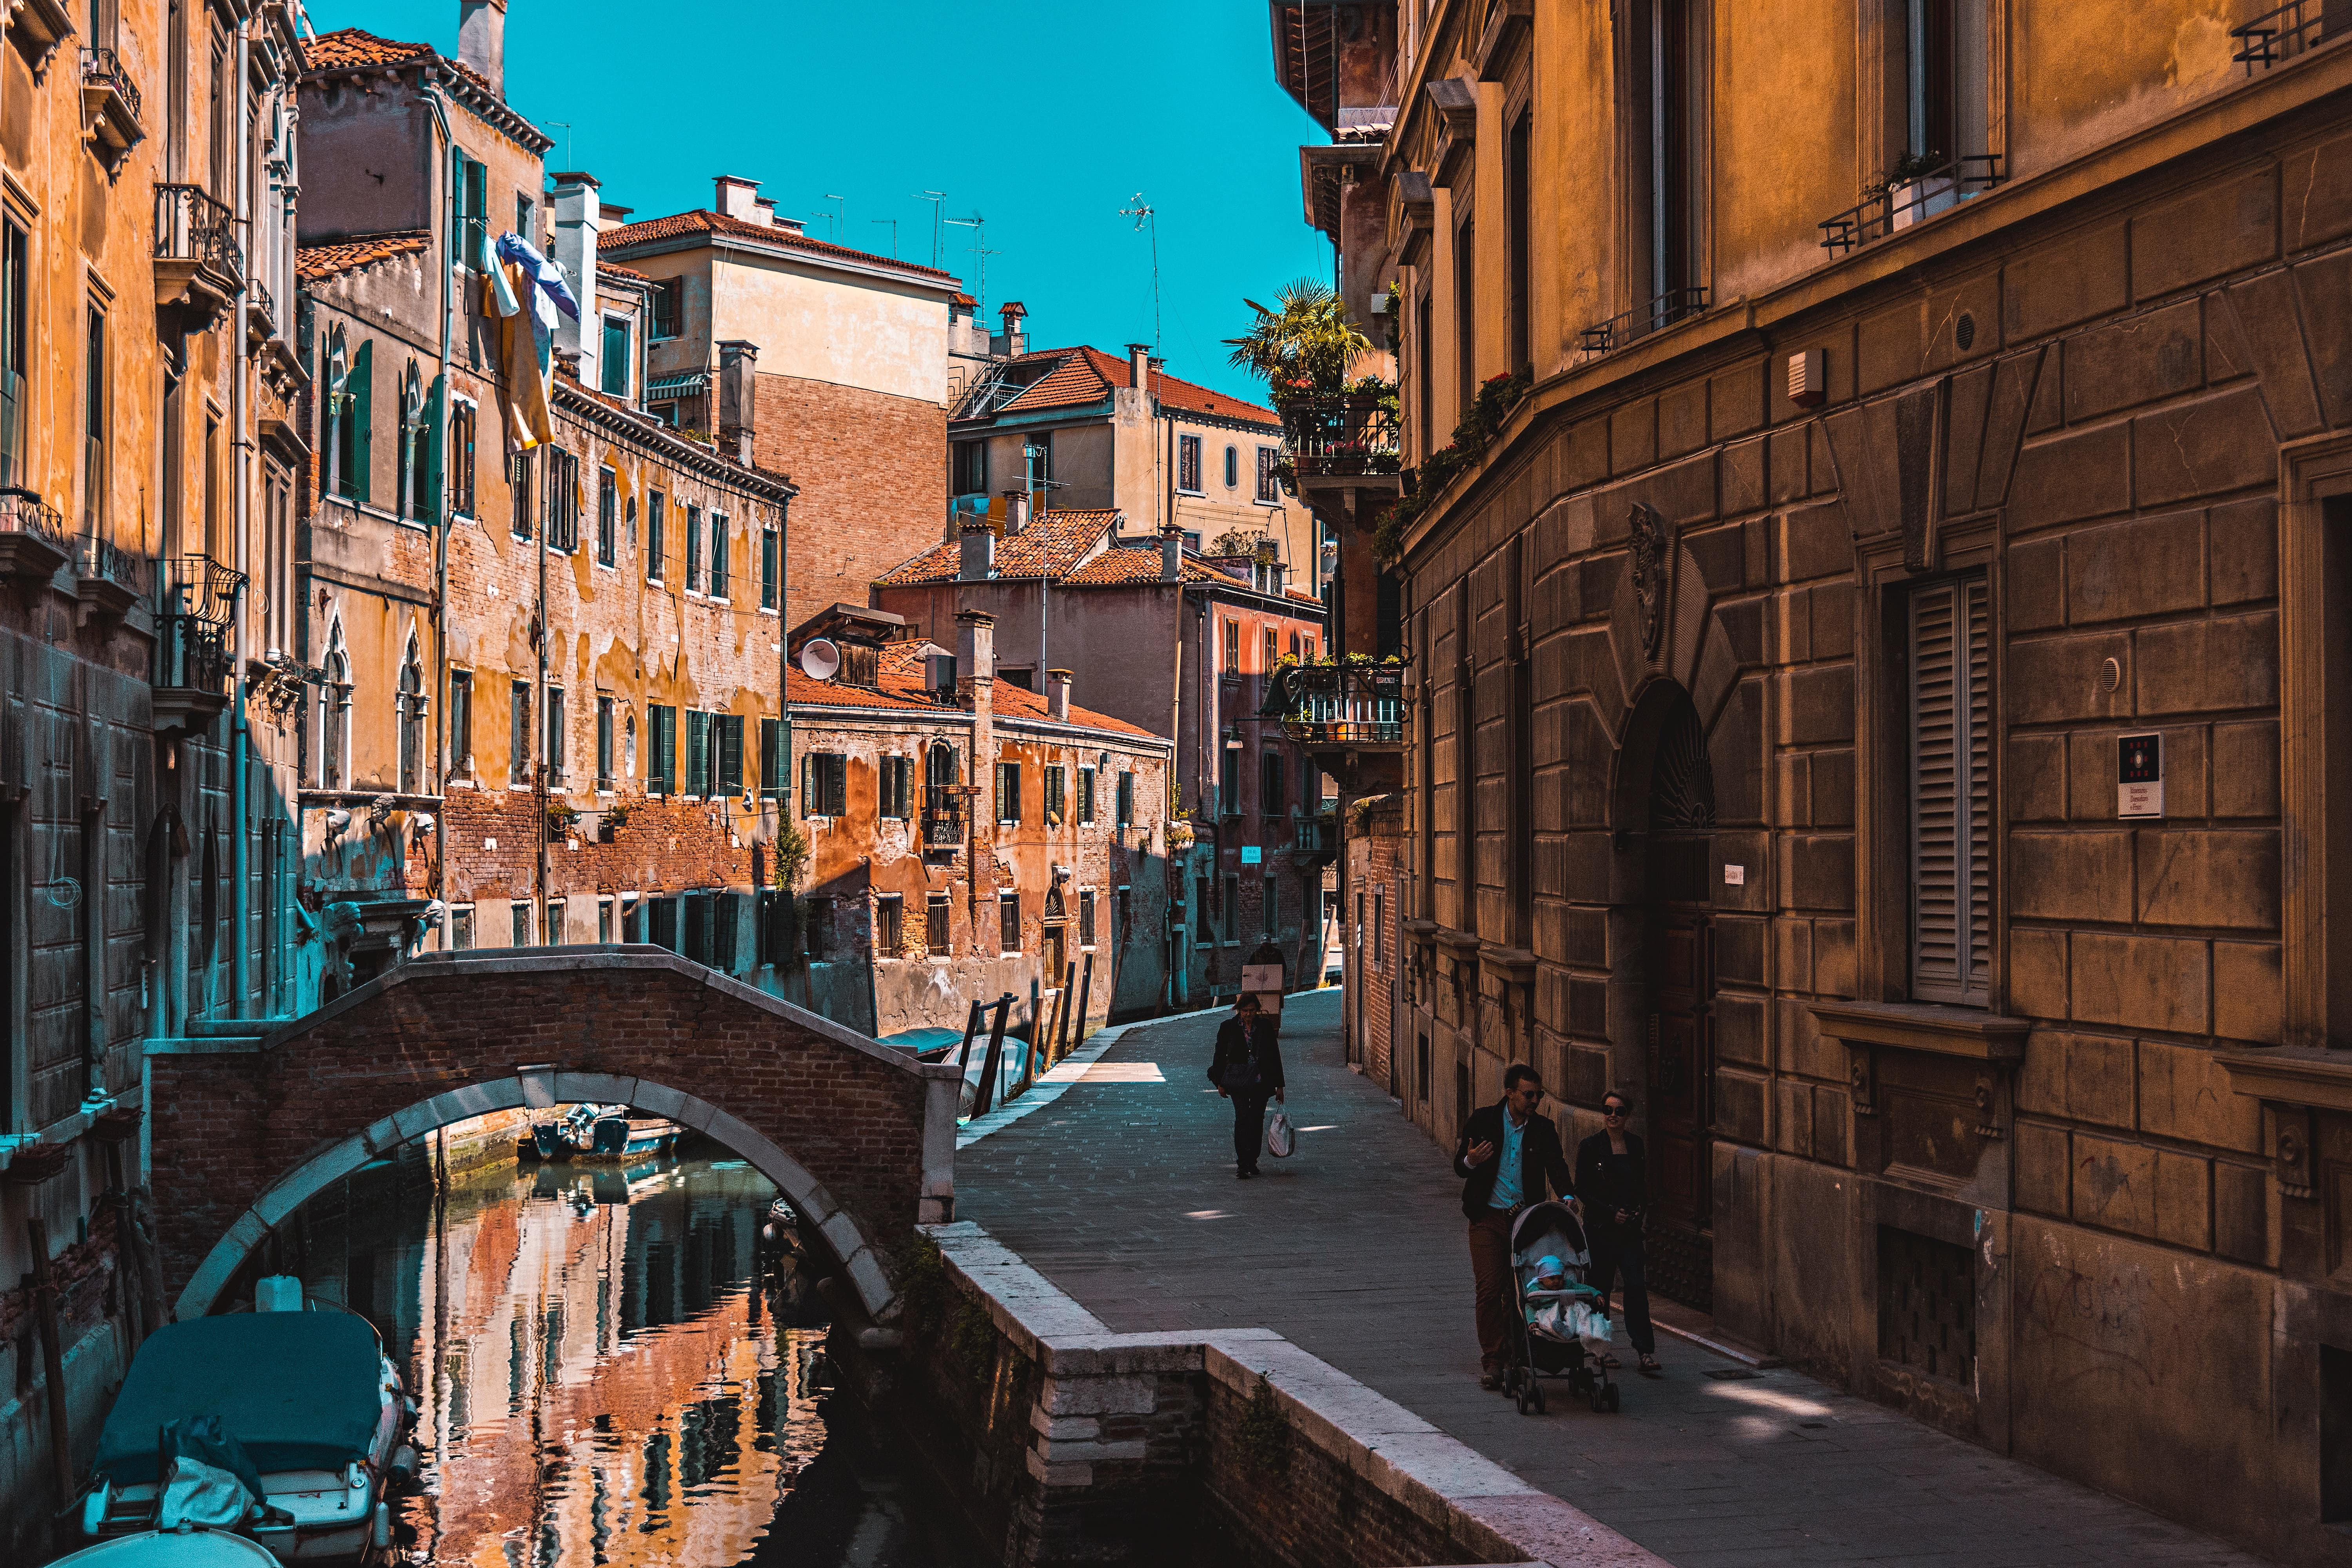 The View From Venice's Canals